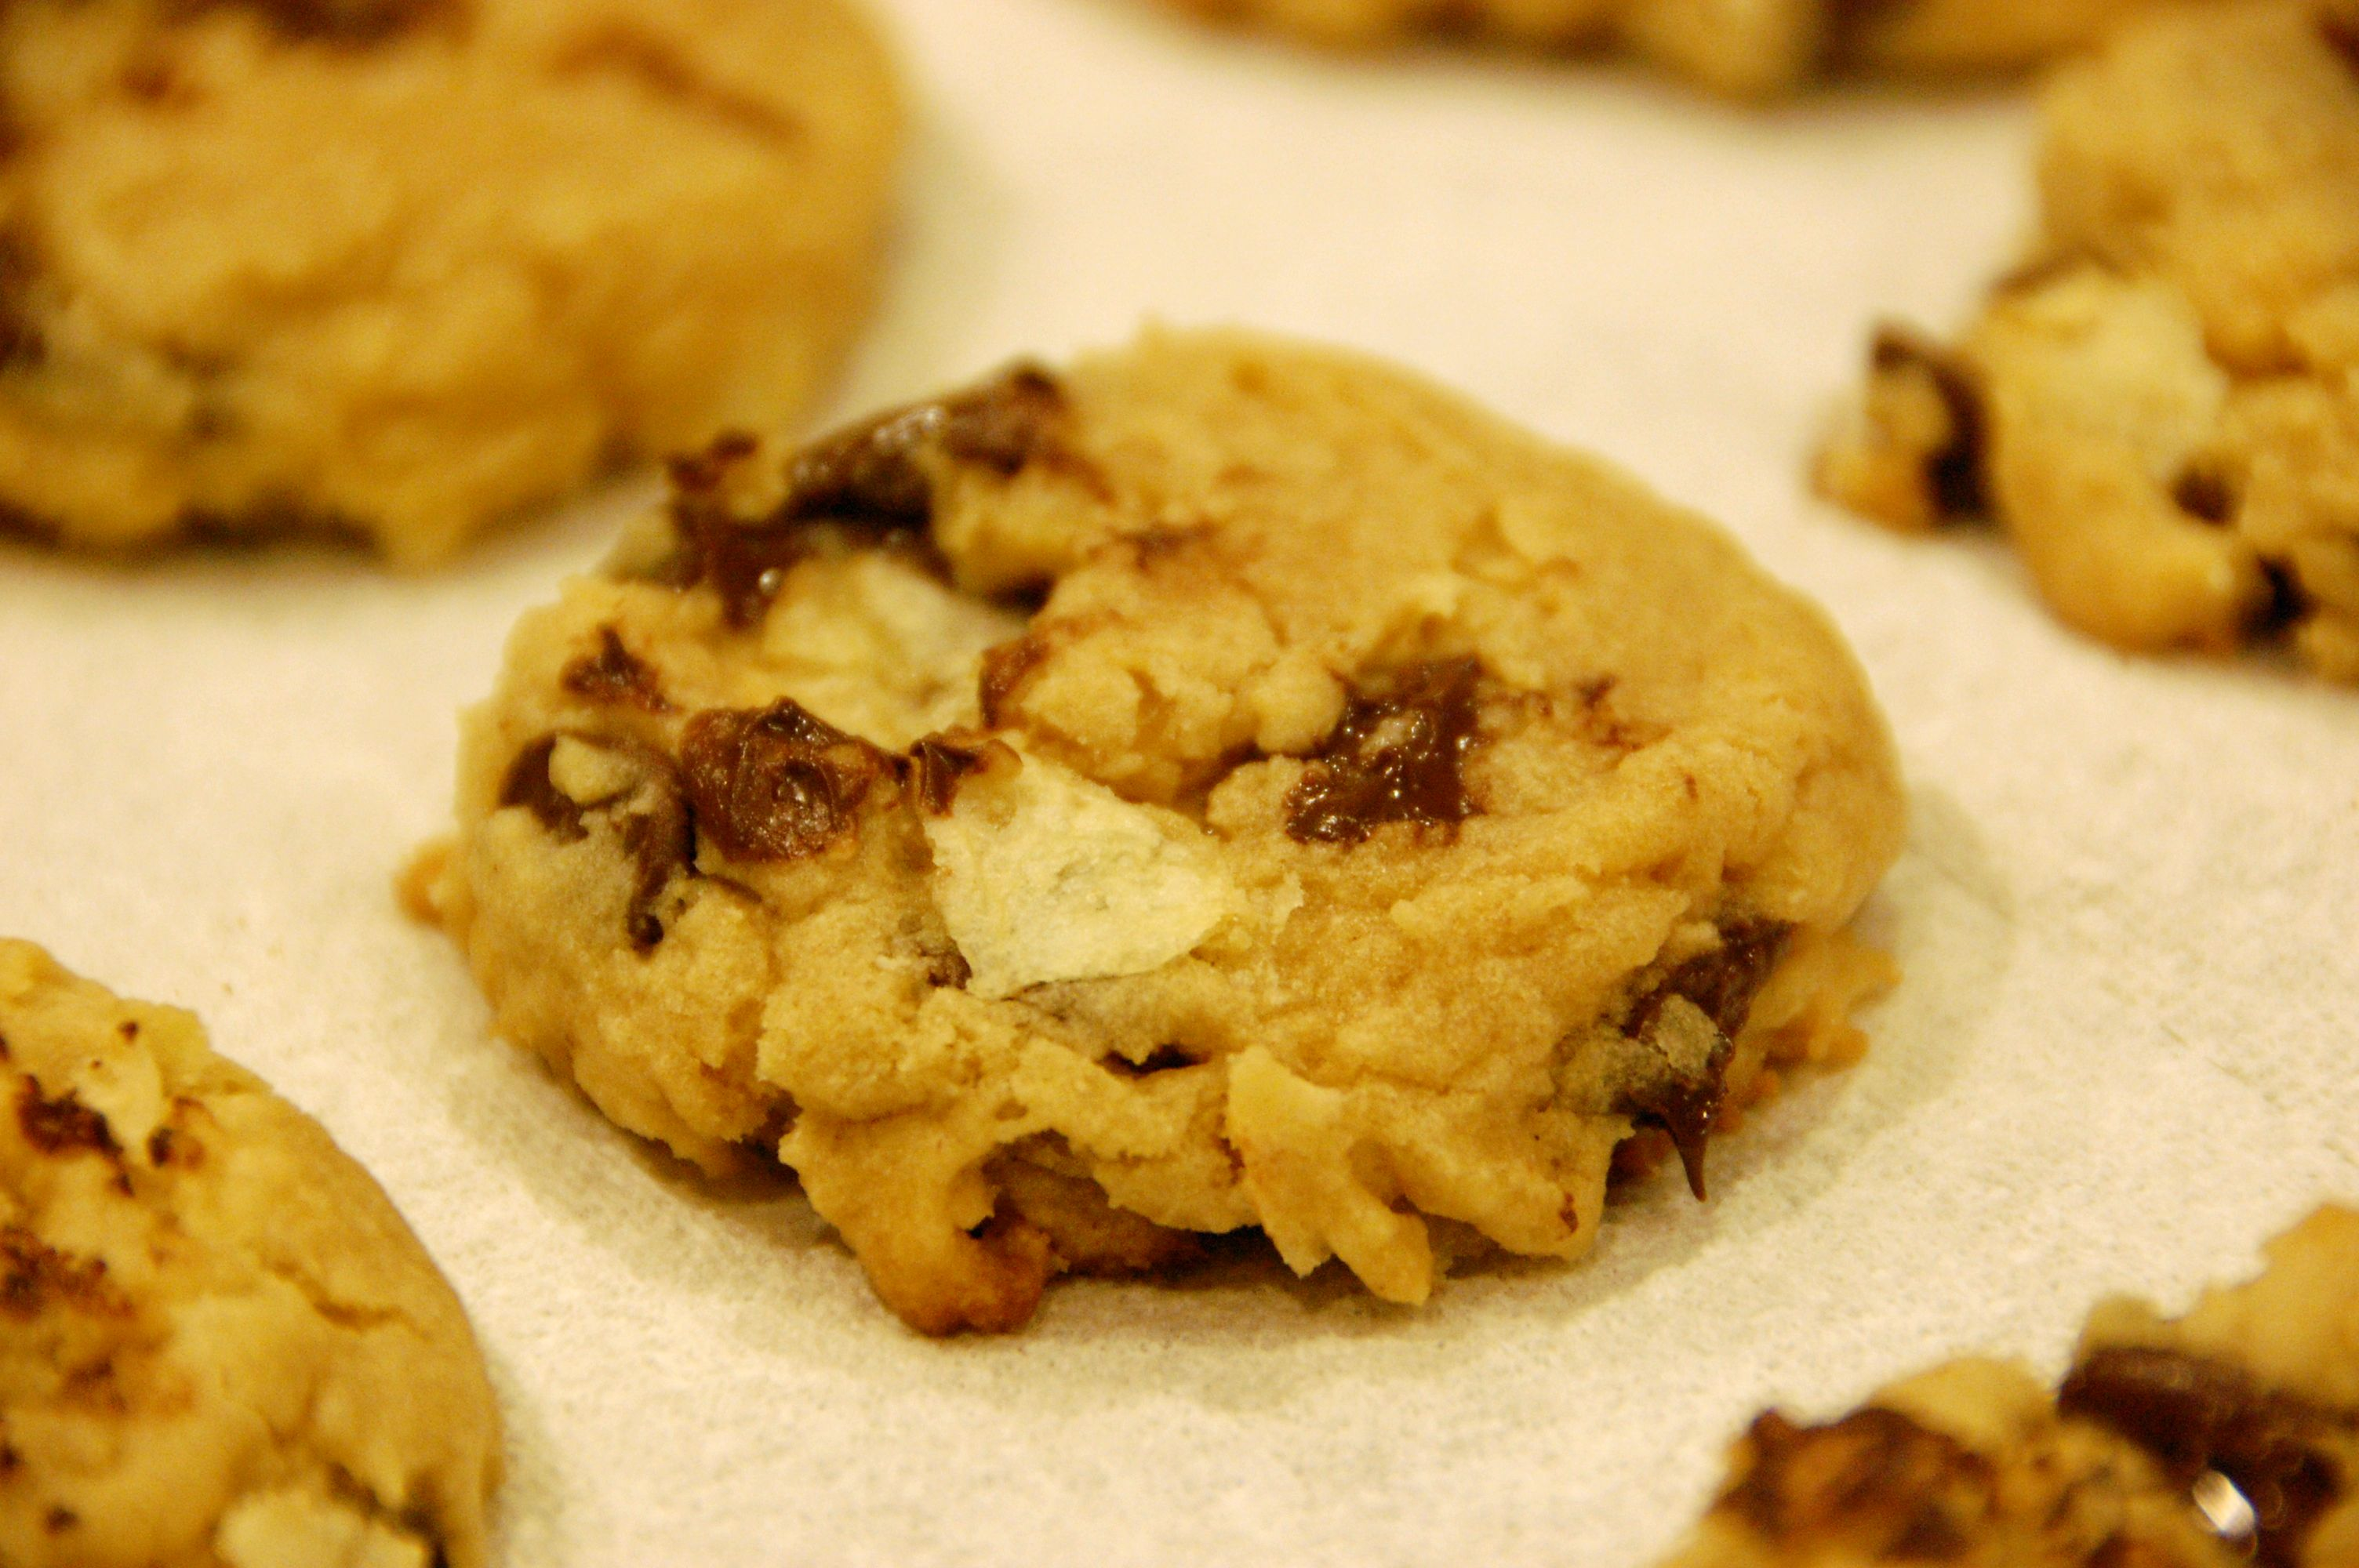 Potato Chip & Chocolate Chip Cookies — The 350 Degree Oven